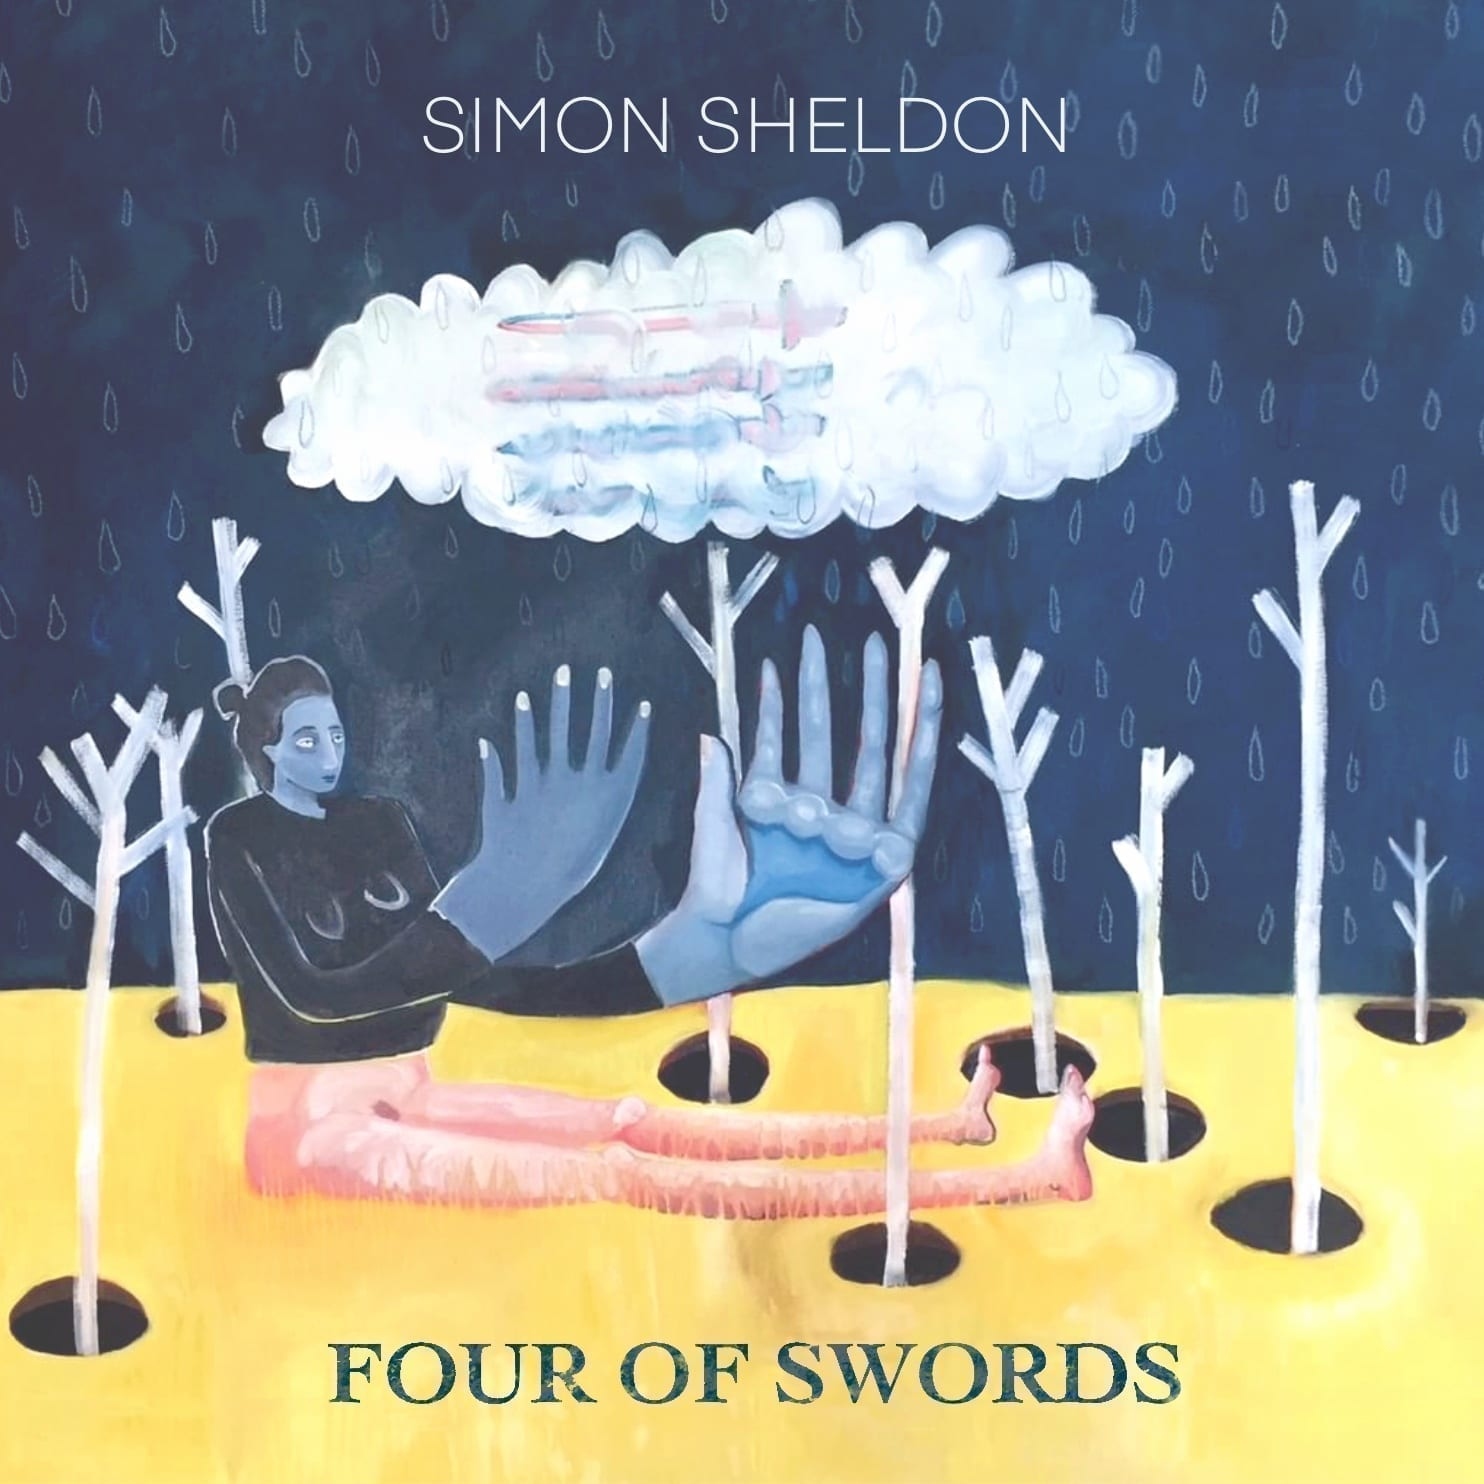 Simon Sheldon 'The Four of Swords' Album The Freebooter Lounge